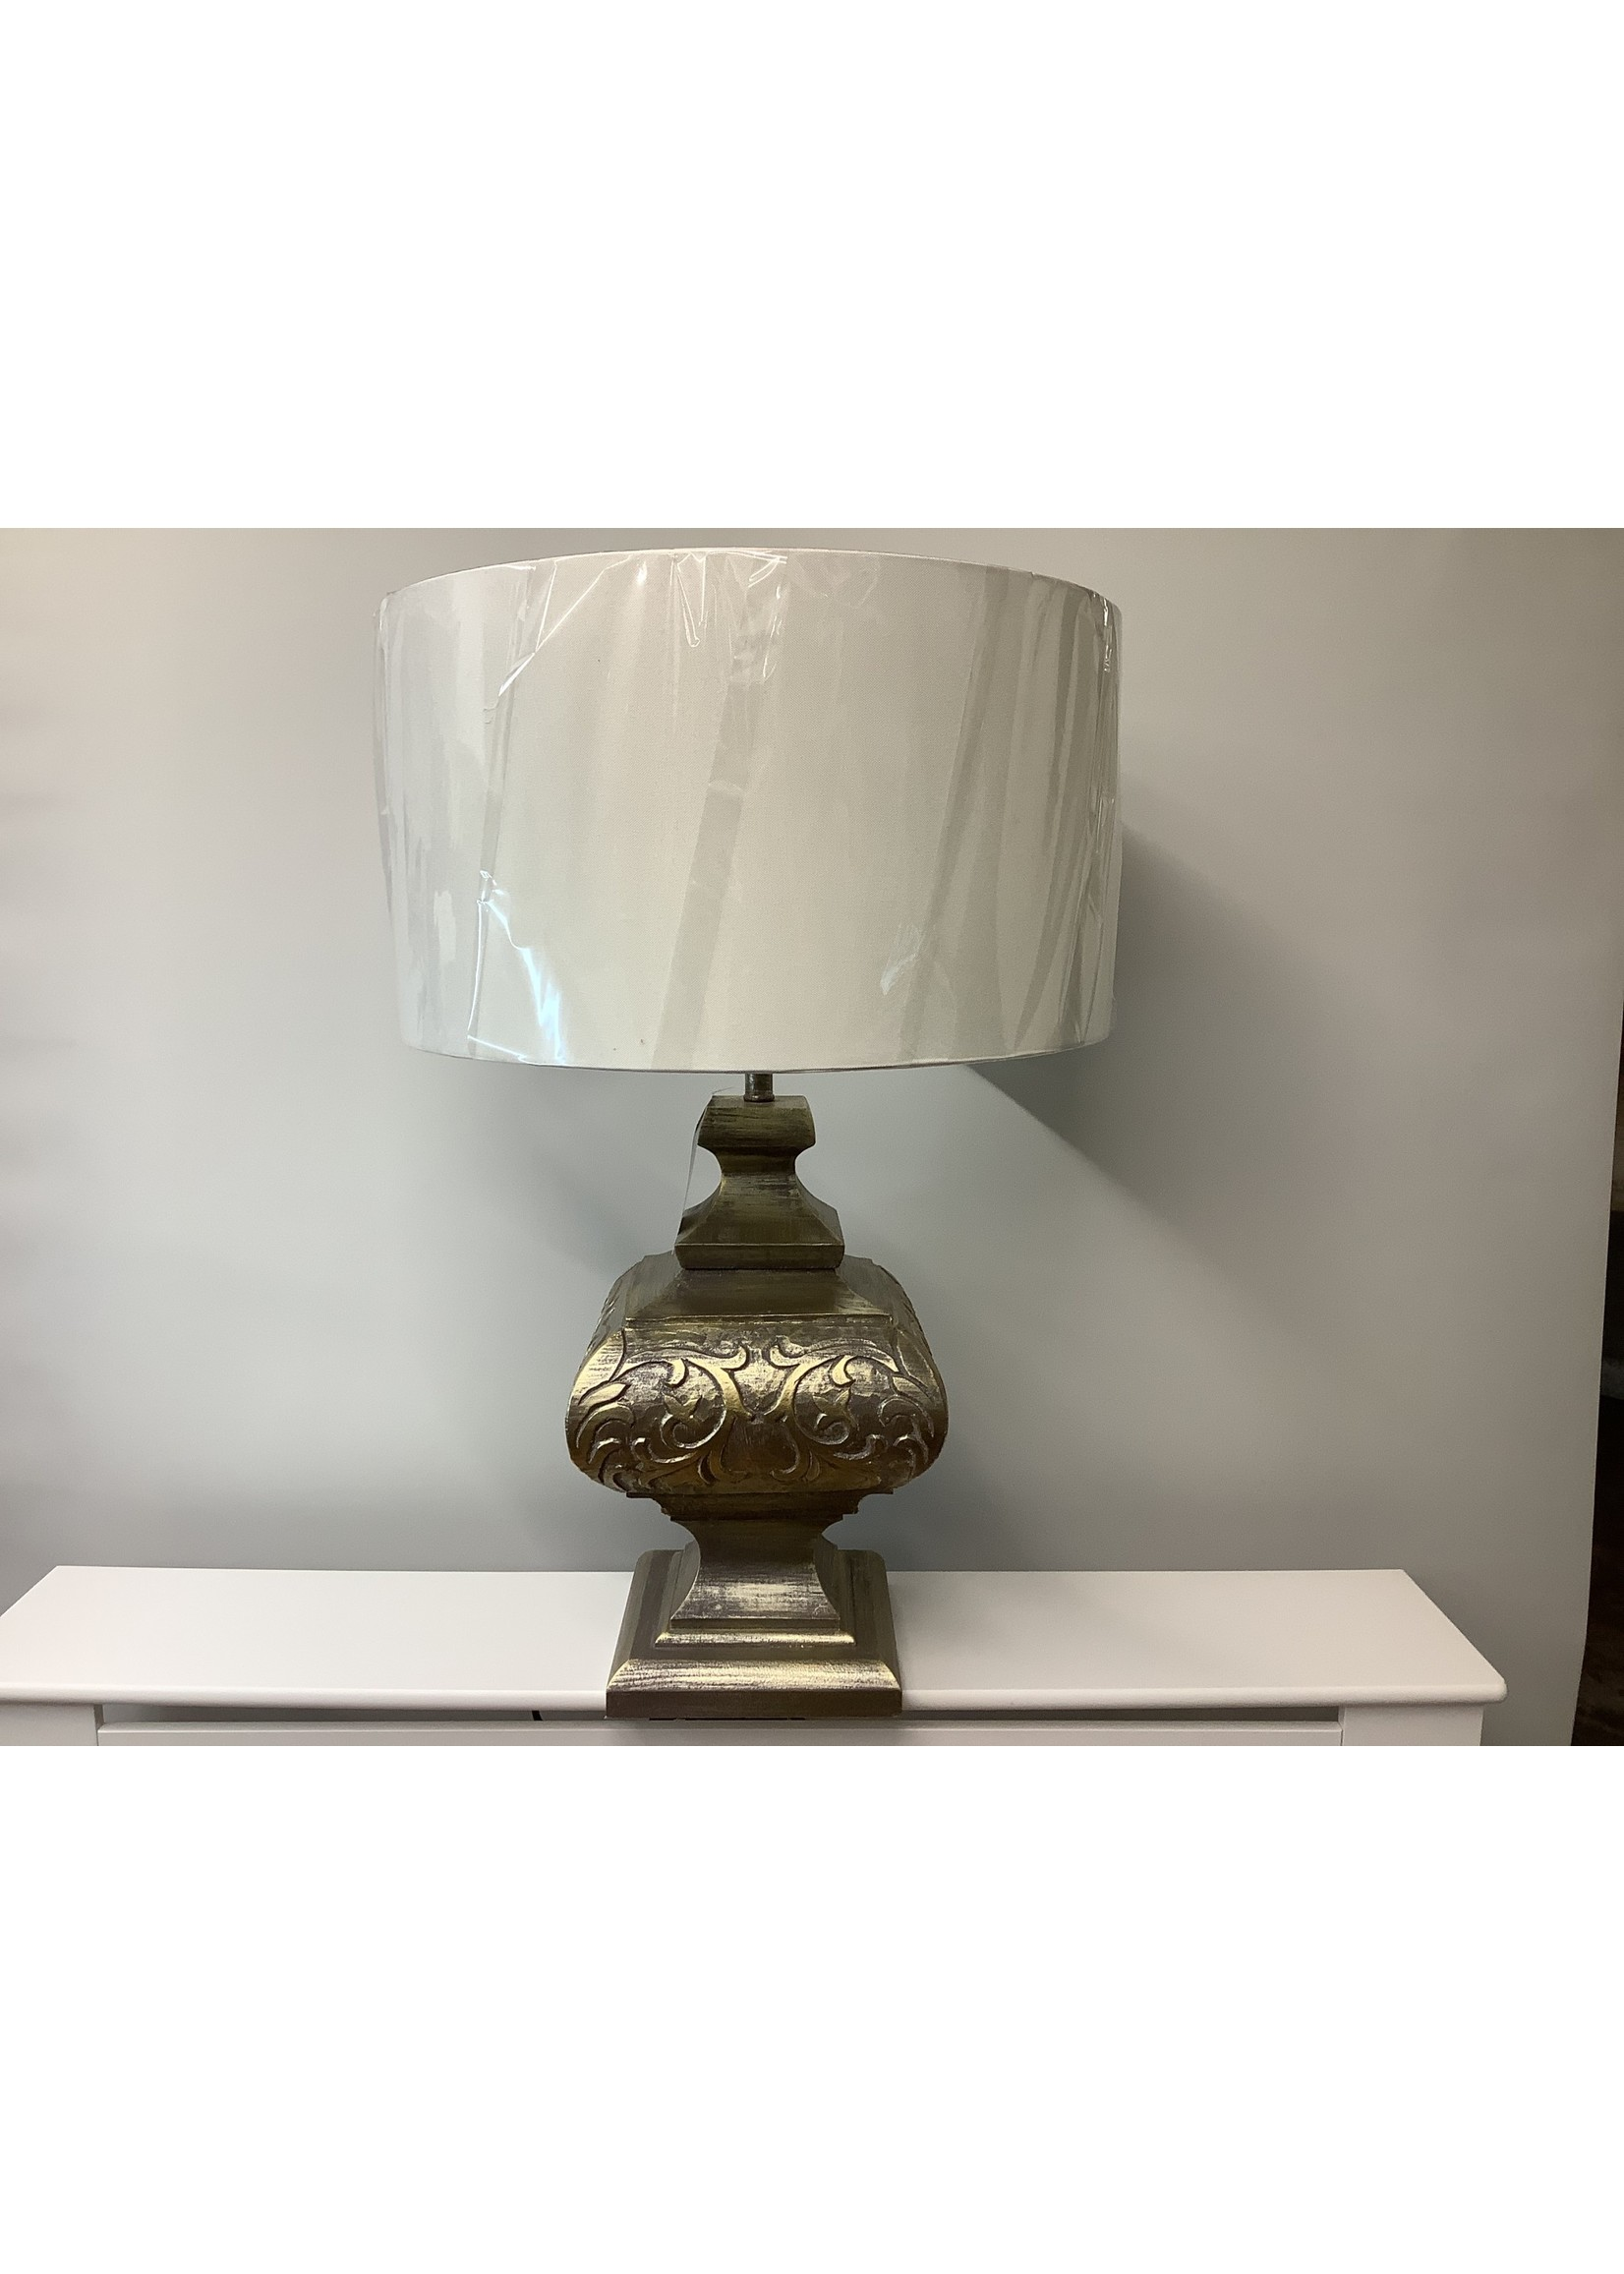 Large Gold rub affect lamp 74cm tall x 49cm wide